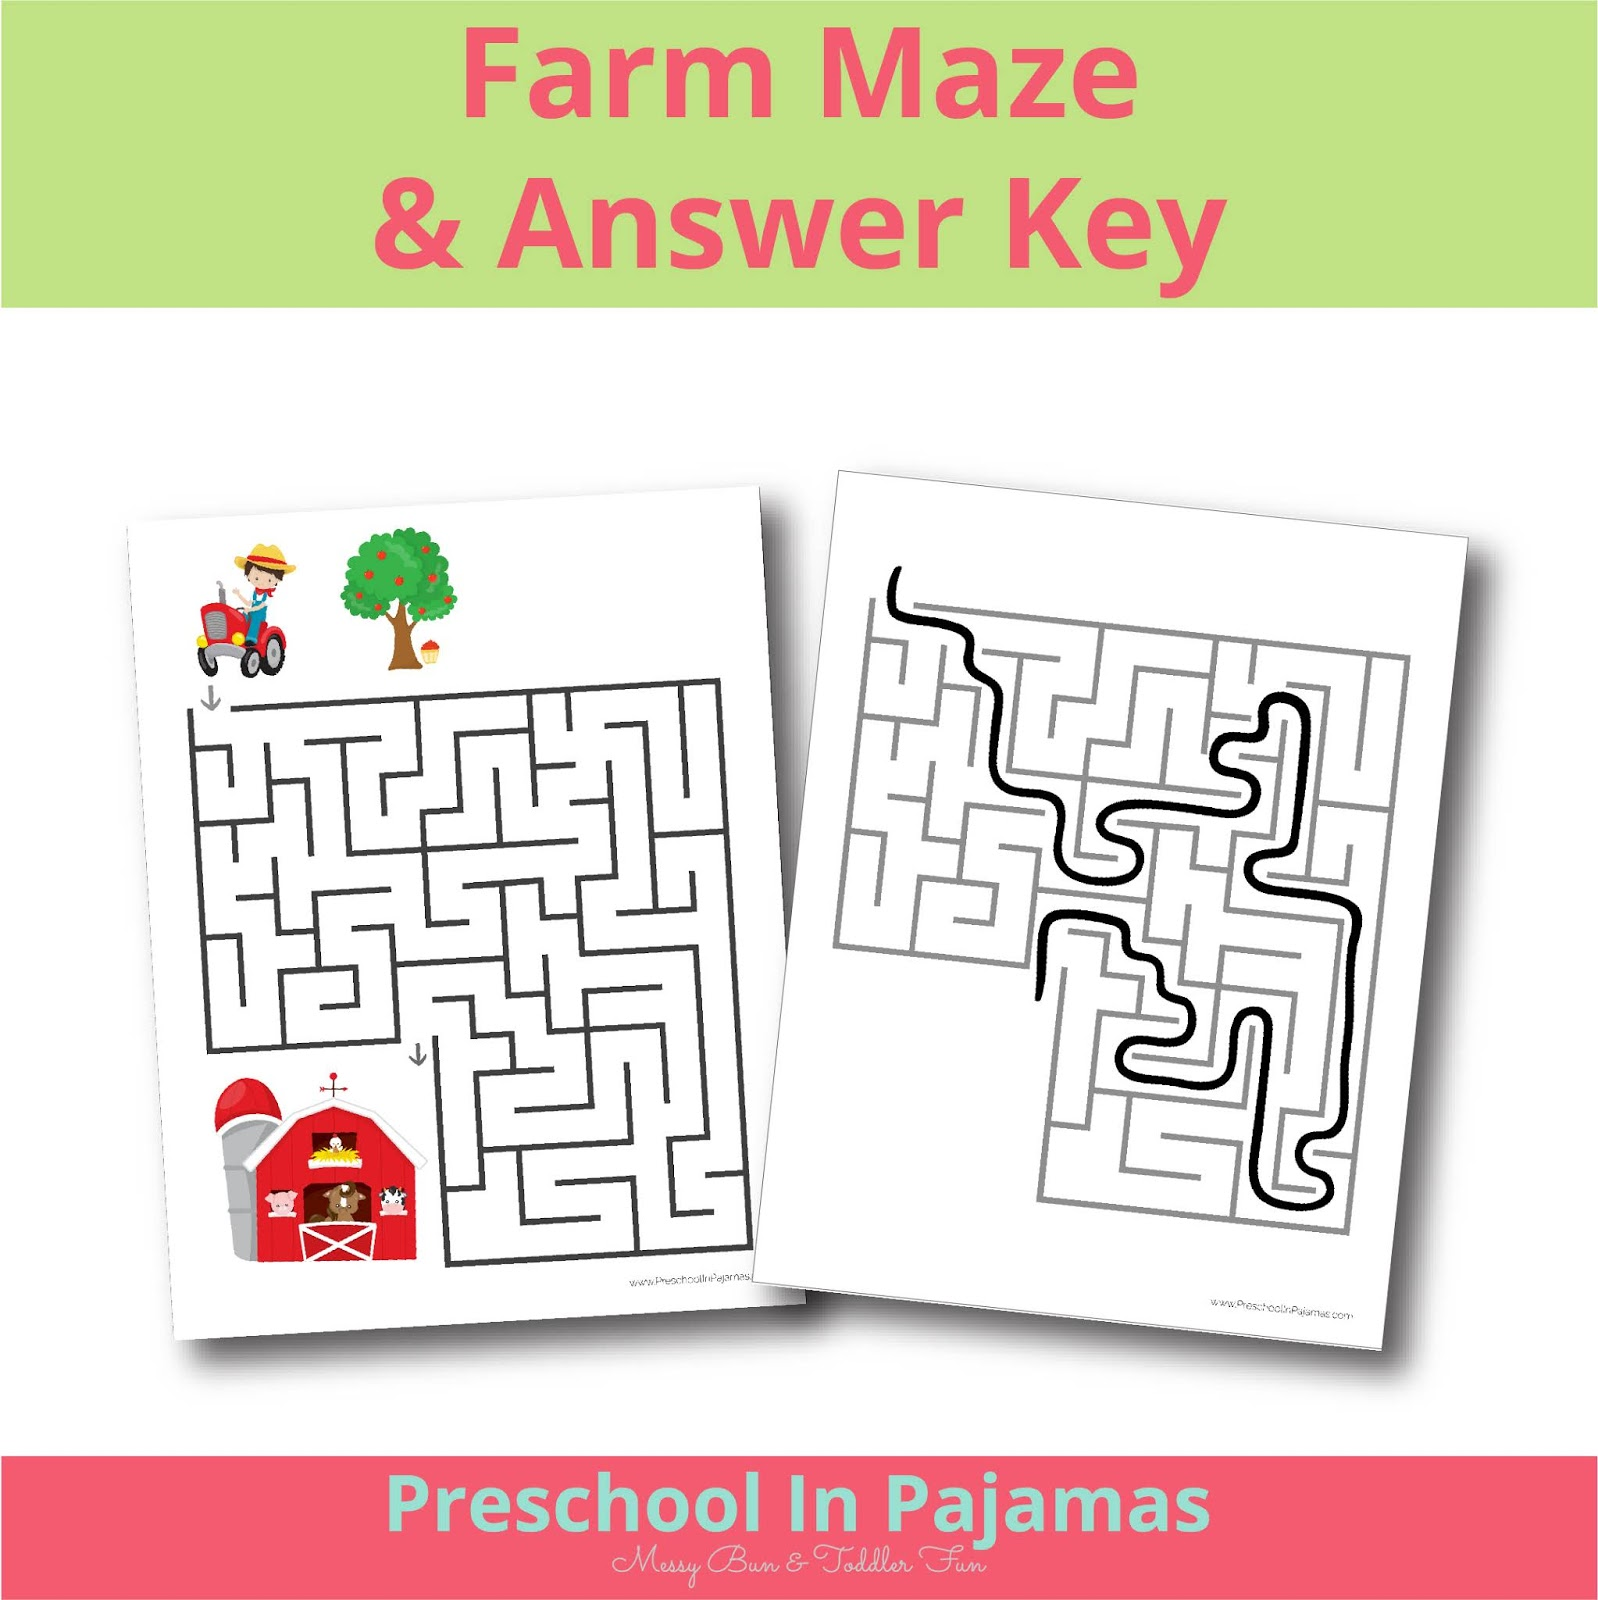 Free Farm Maze Printable Worksheet